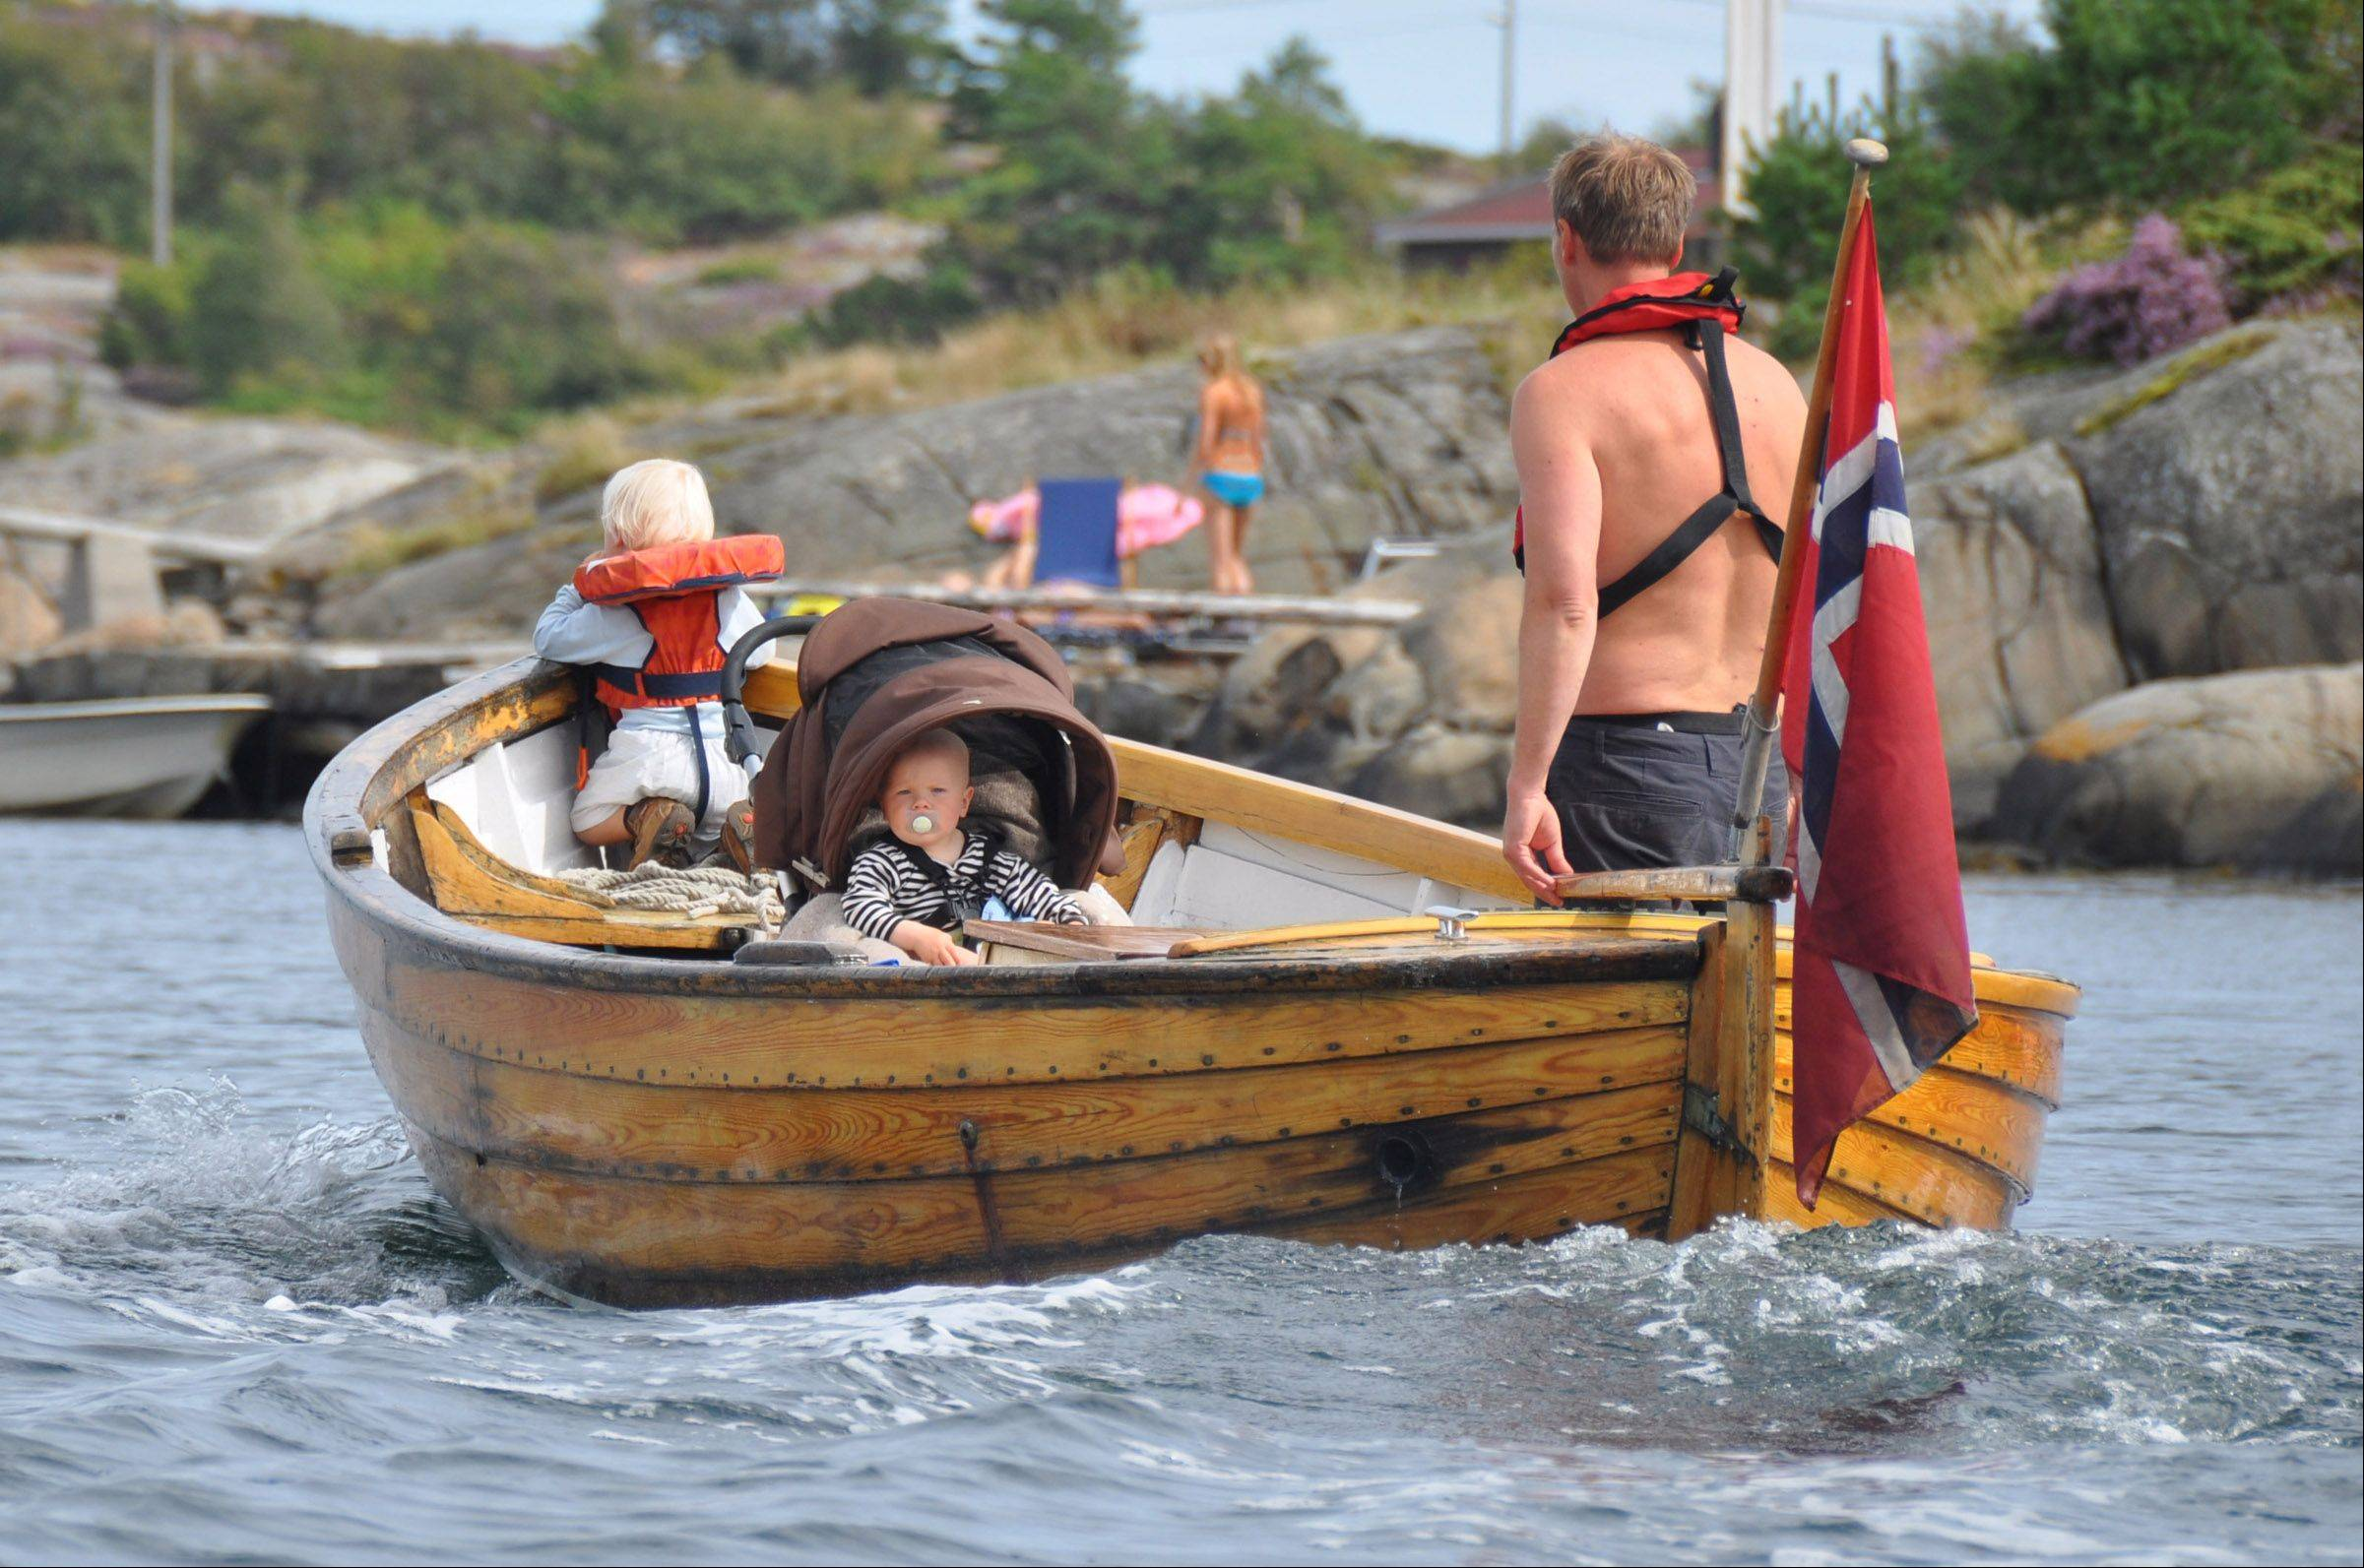 This is a photo I took this summer while traveling with my mother in the Lyngor Fiord, Norway. We crossed by this boat going in the opposite direction and I had just a second or two to get the shot. I LOVE the dichotomy of the modern father shuttling his children in an ancient wooden boat!